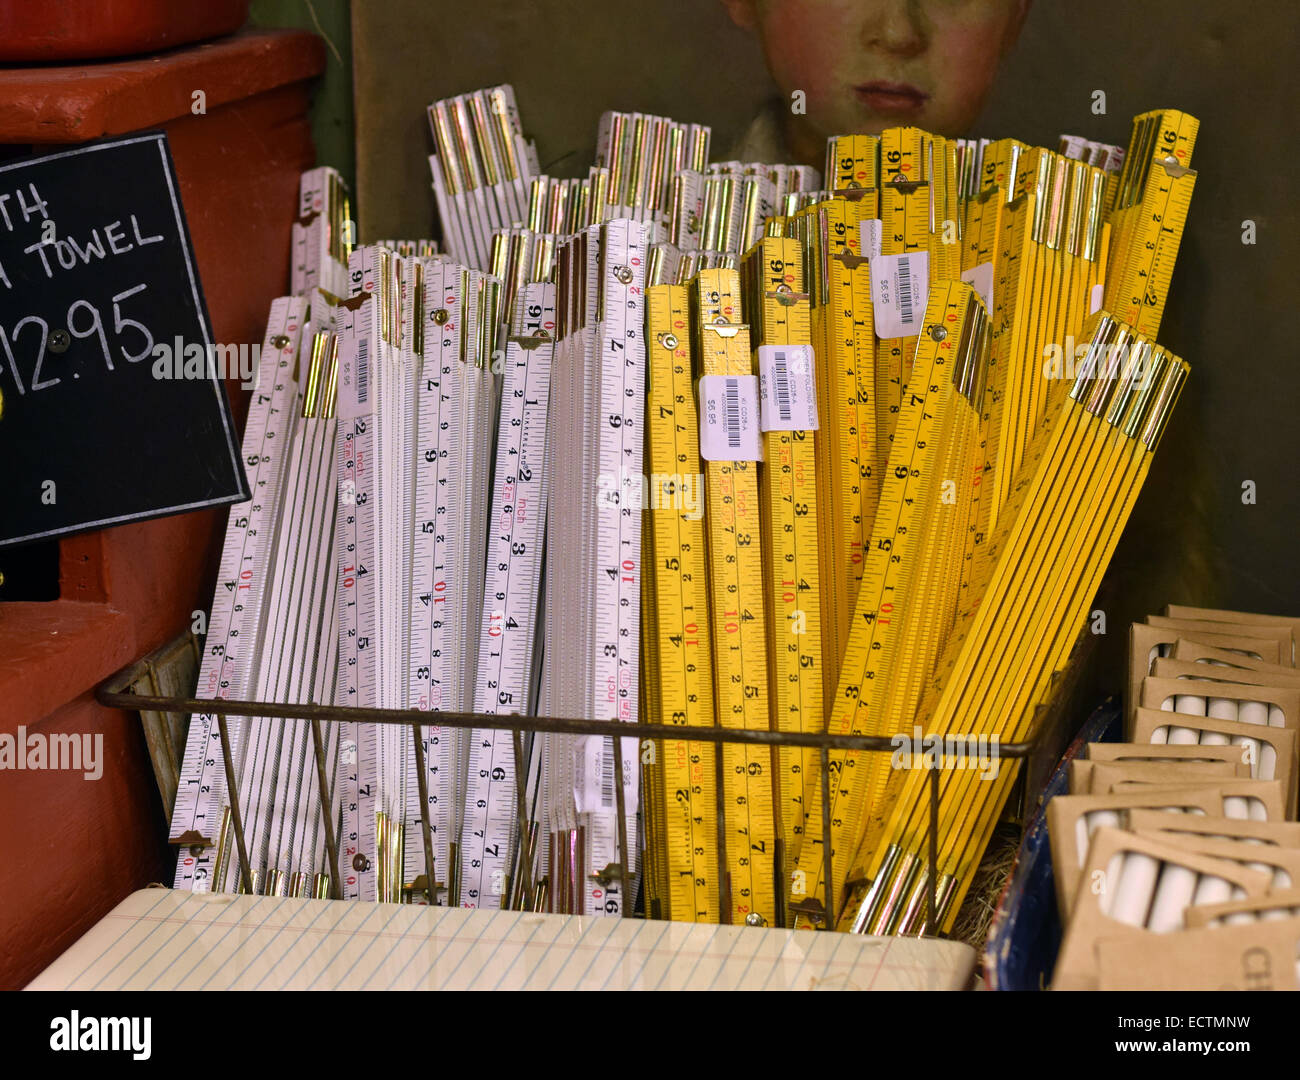 A basket of old fashioned wooden folding rulers on display at the Fish's Eddy on Broadway in lower Manhattan, - Stock Image